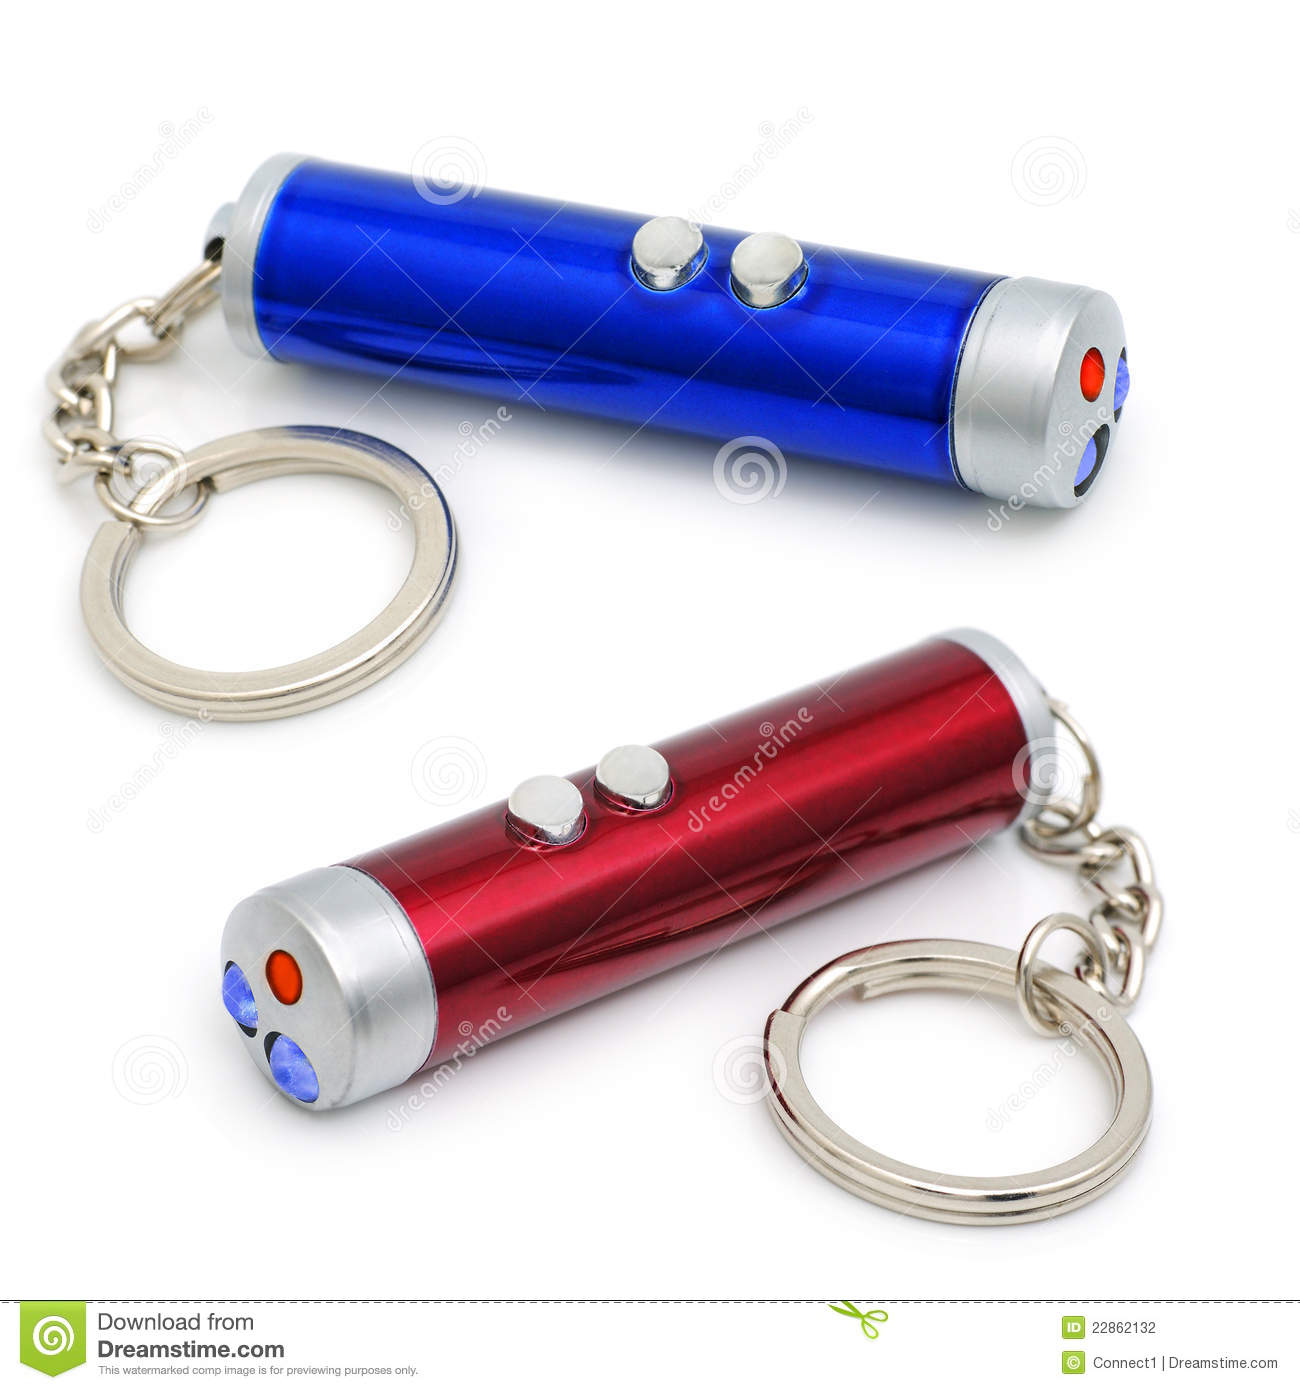 Laser pointer clipart graphic library stock LED Electric Torch - Laser Pointer Stock Photography - Image: 22862132 graphic library stock